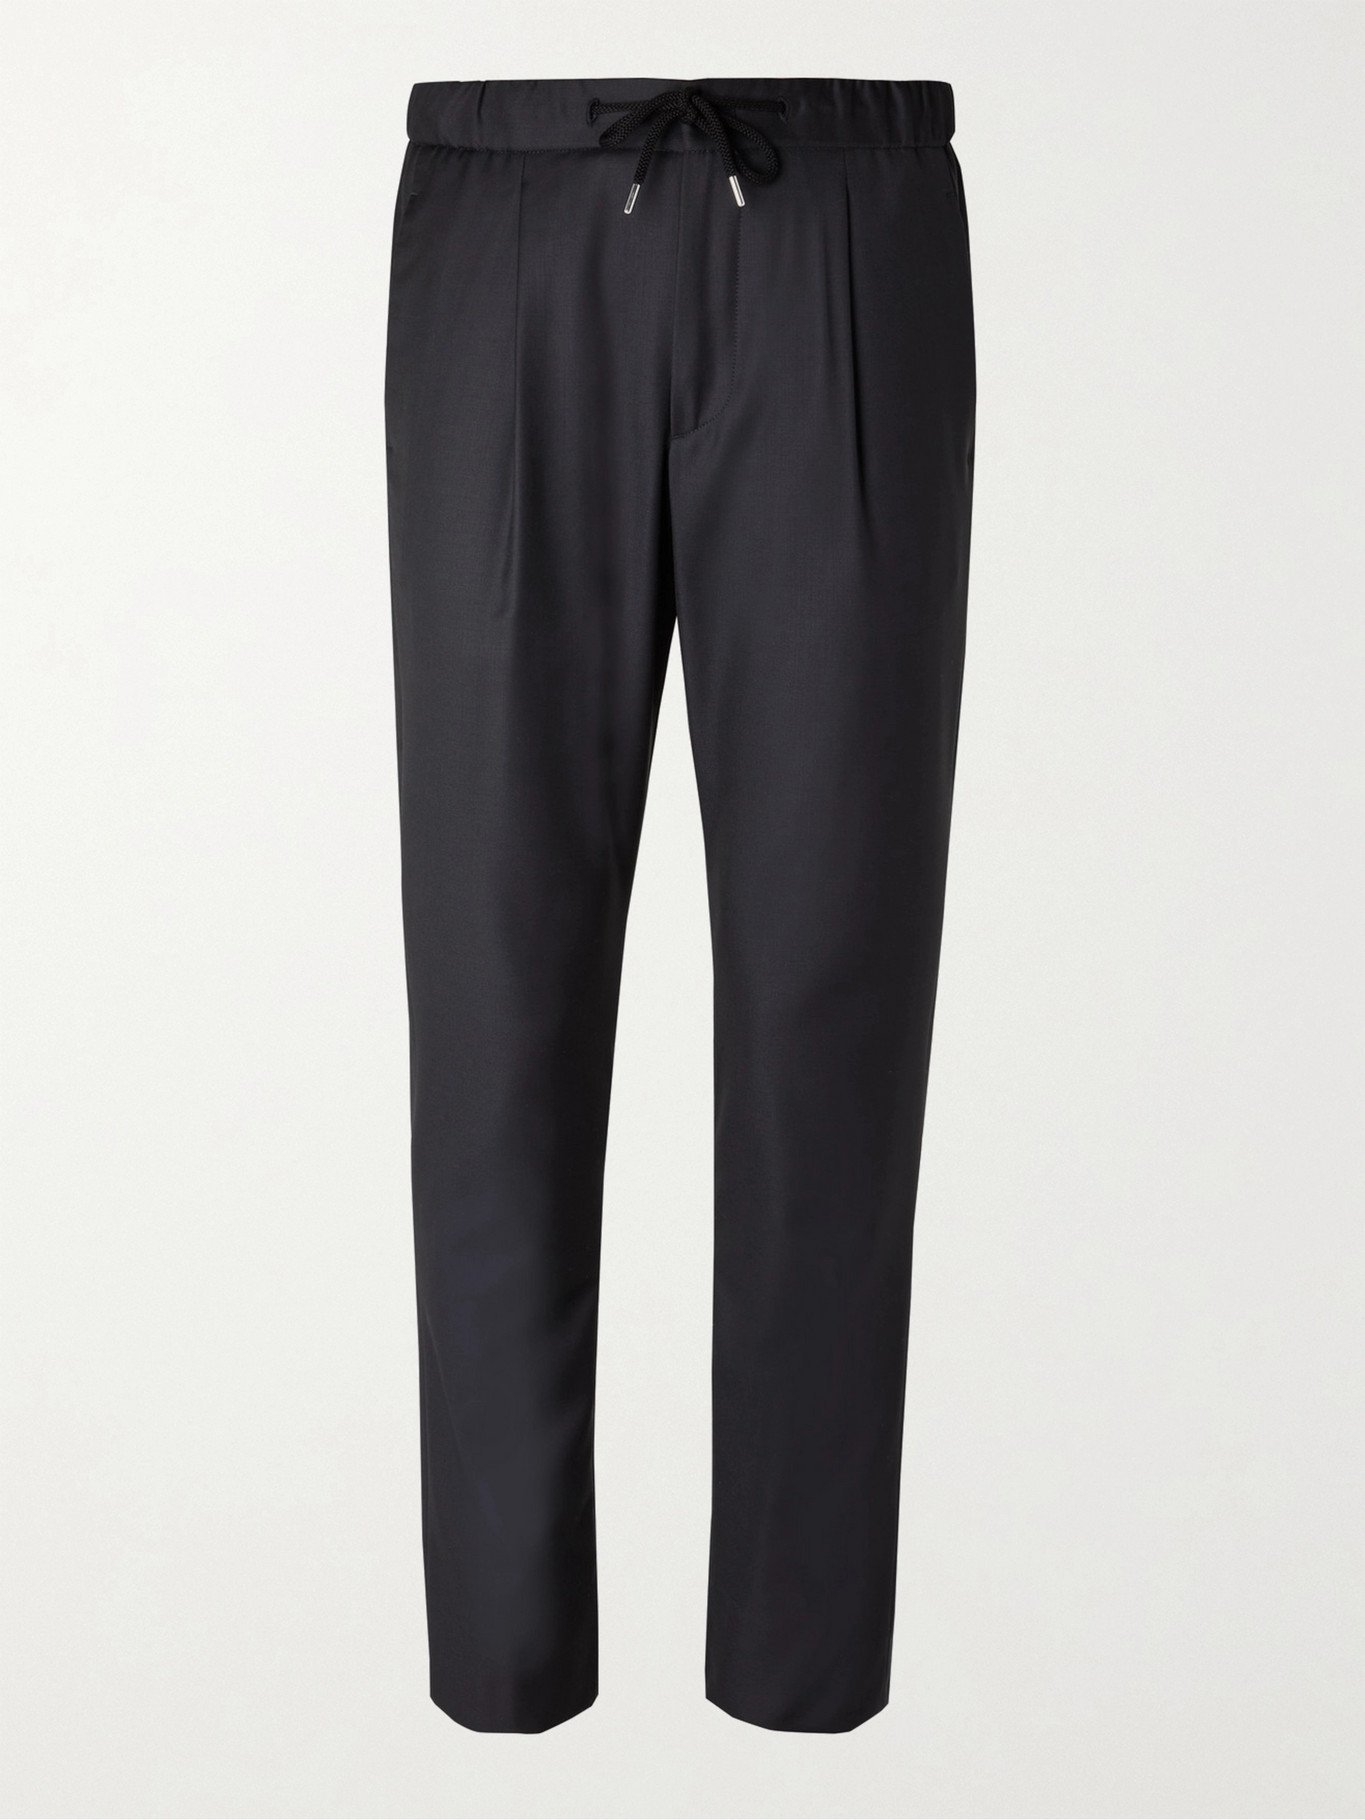 GIORGIO ARMANI - Virgin Wool and Cashmere-Blend Drawstring Trousers - Blue